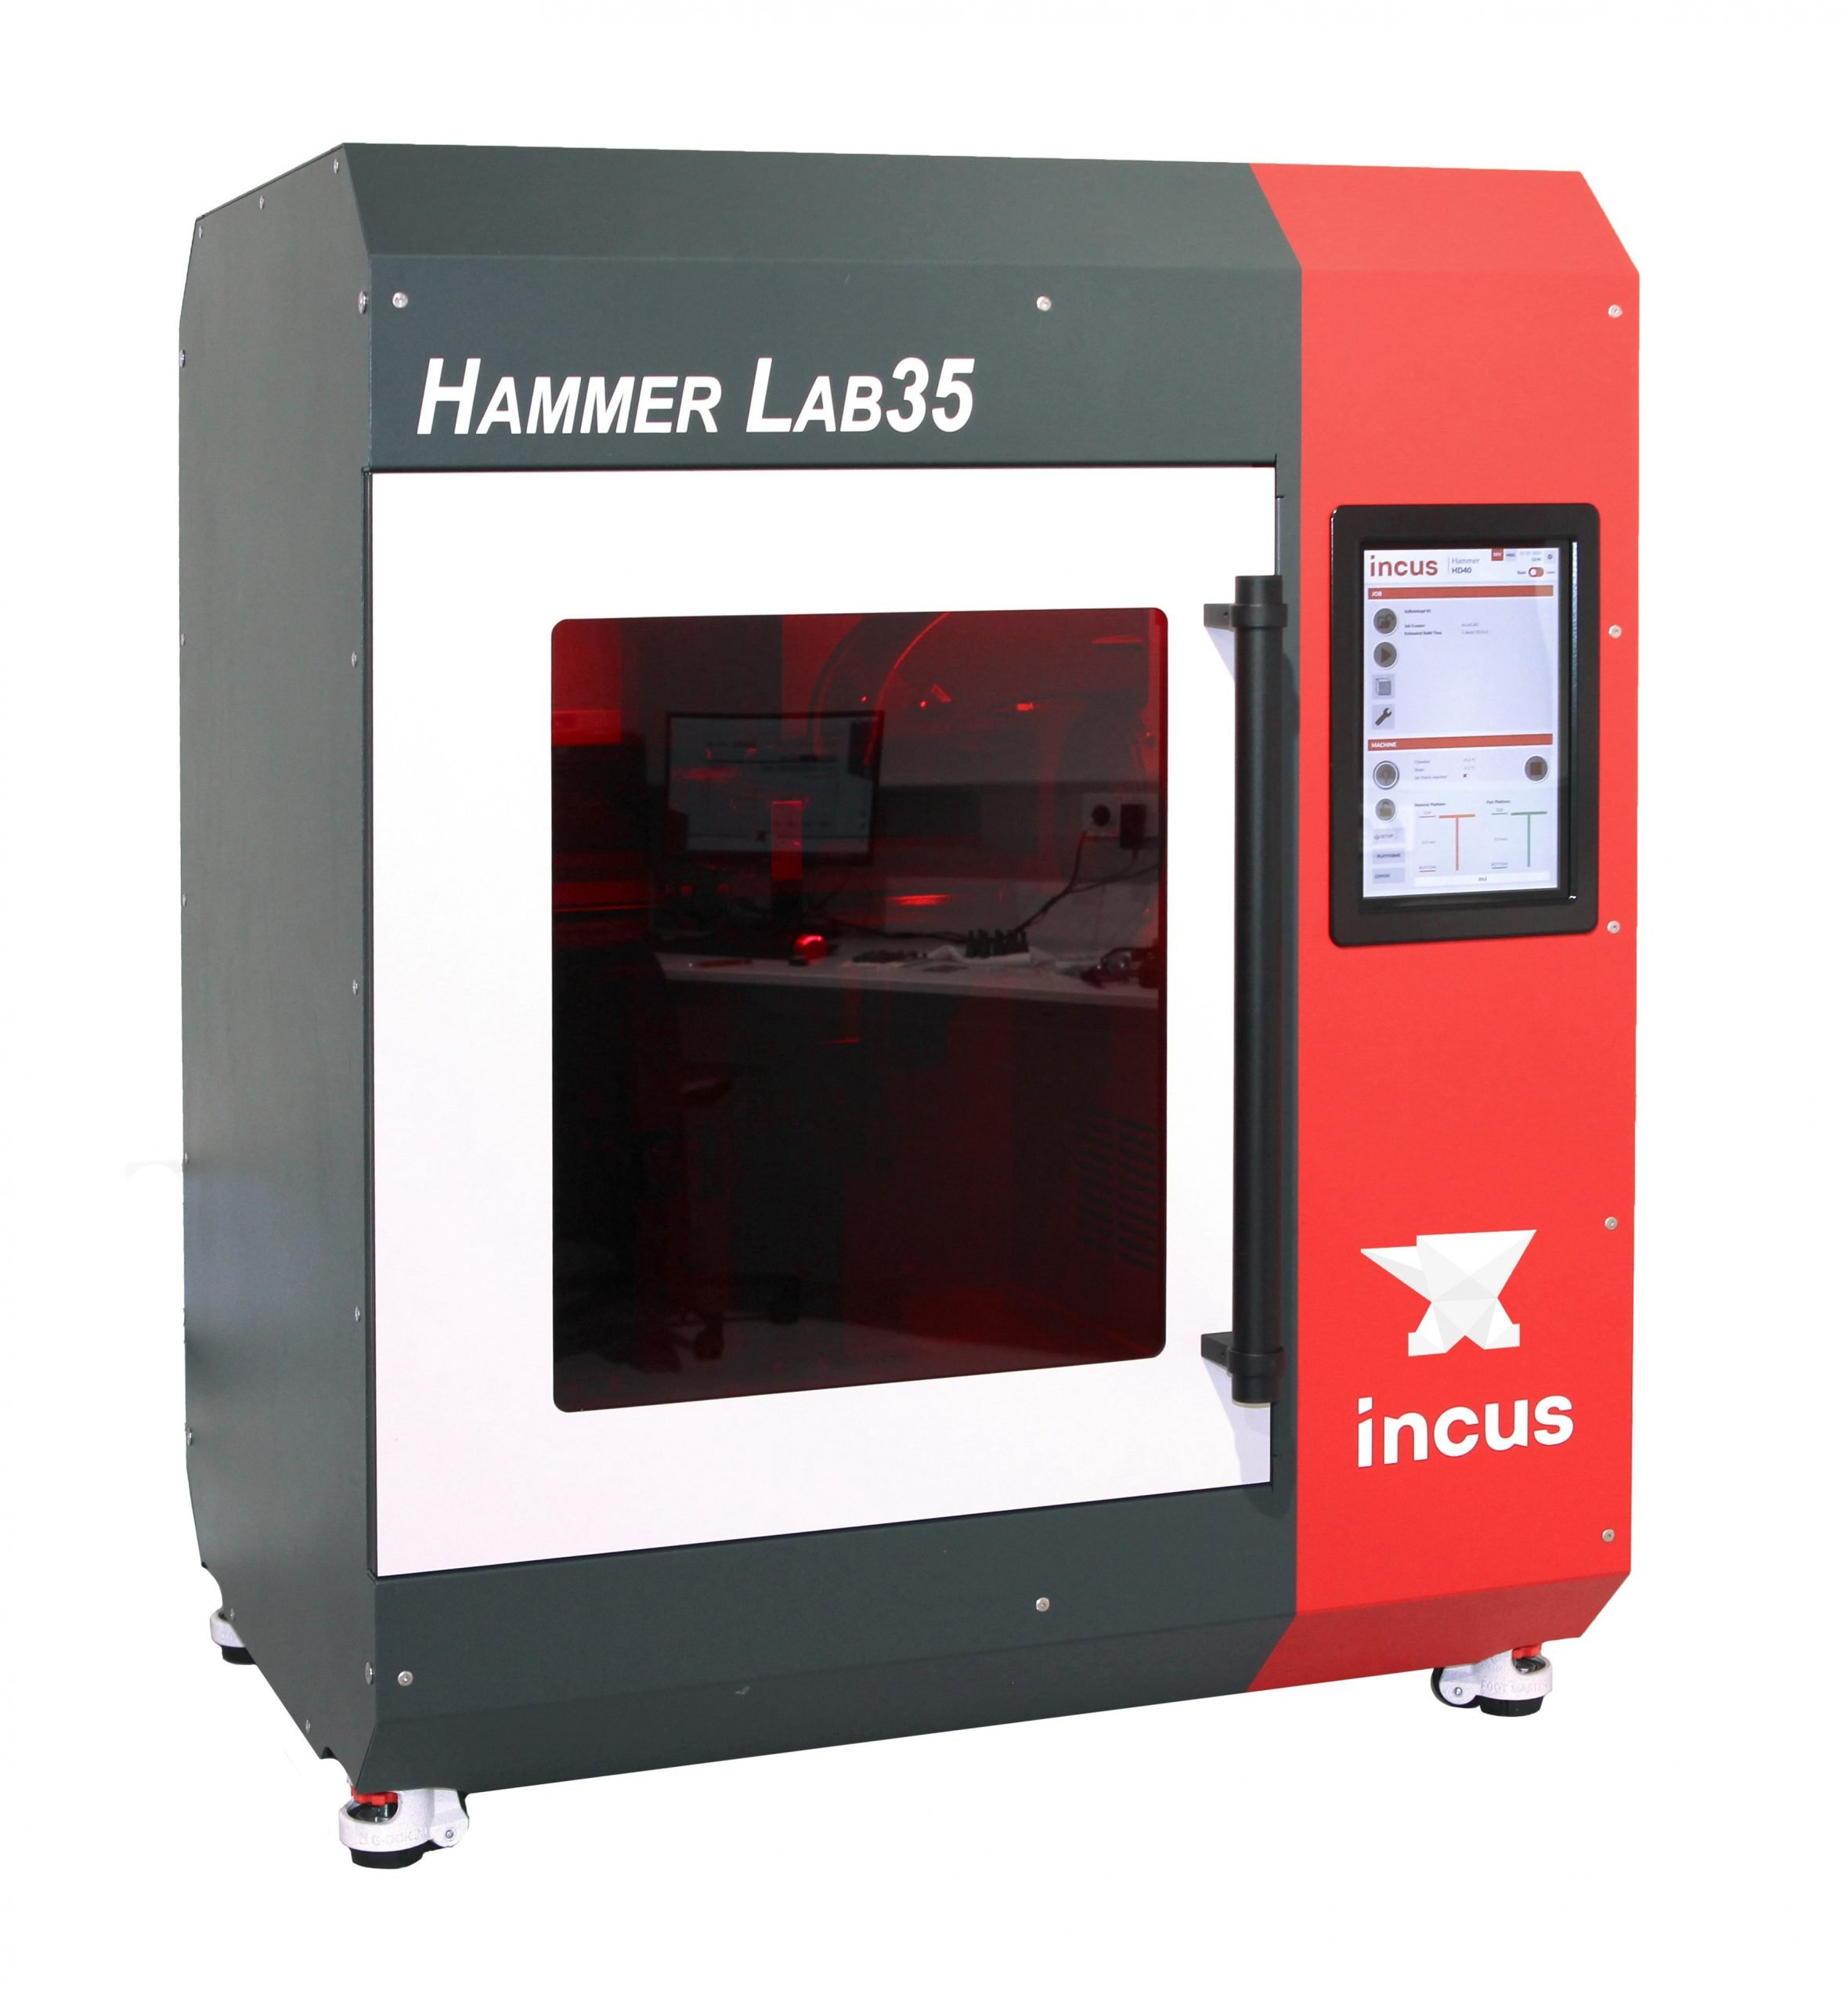 Micro MIM Japan introduces bound metal stereolithography with Incus 3D printer